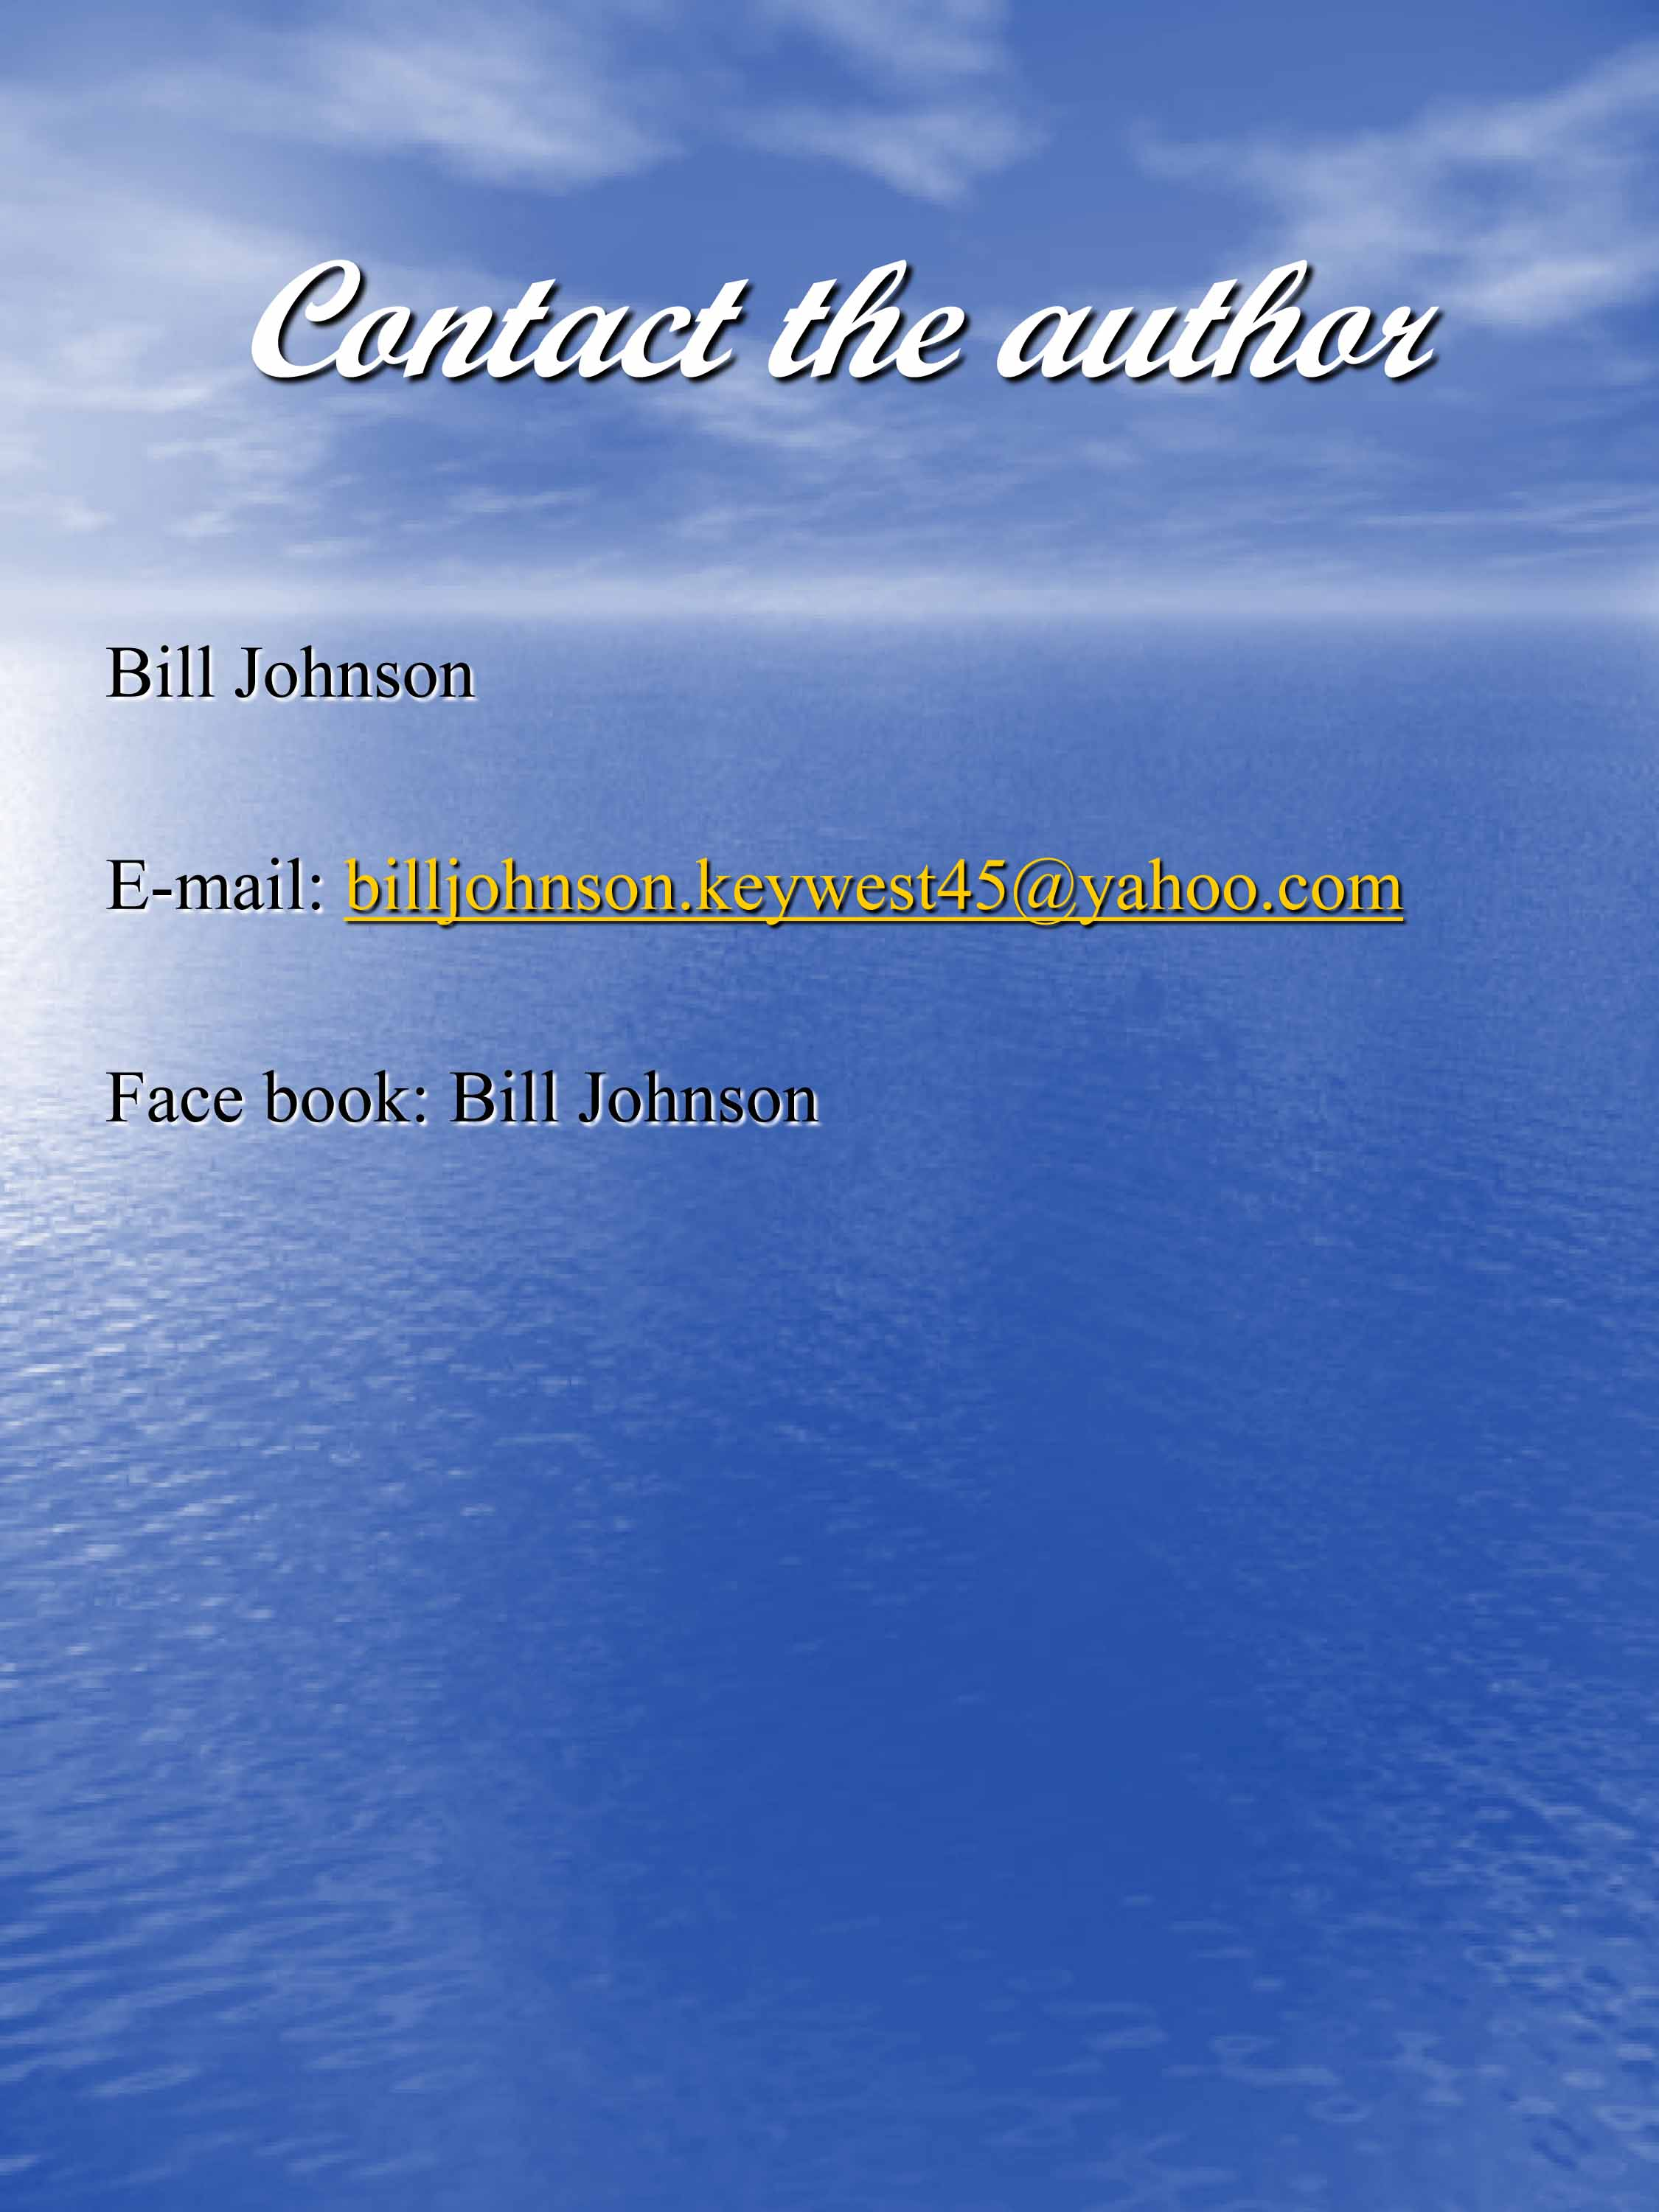 11 Contact the Author